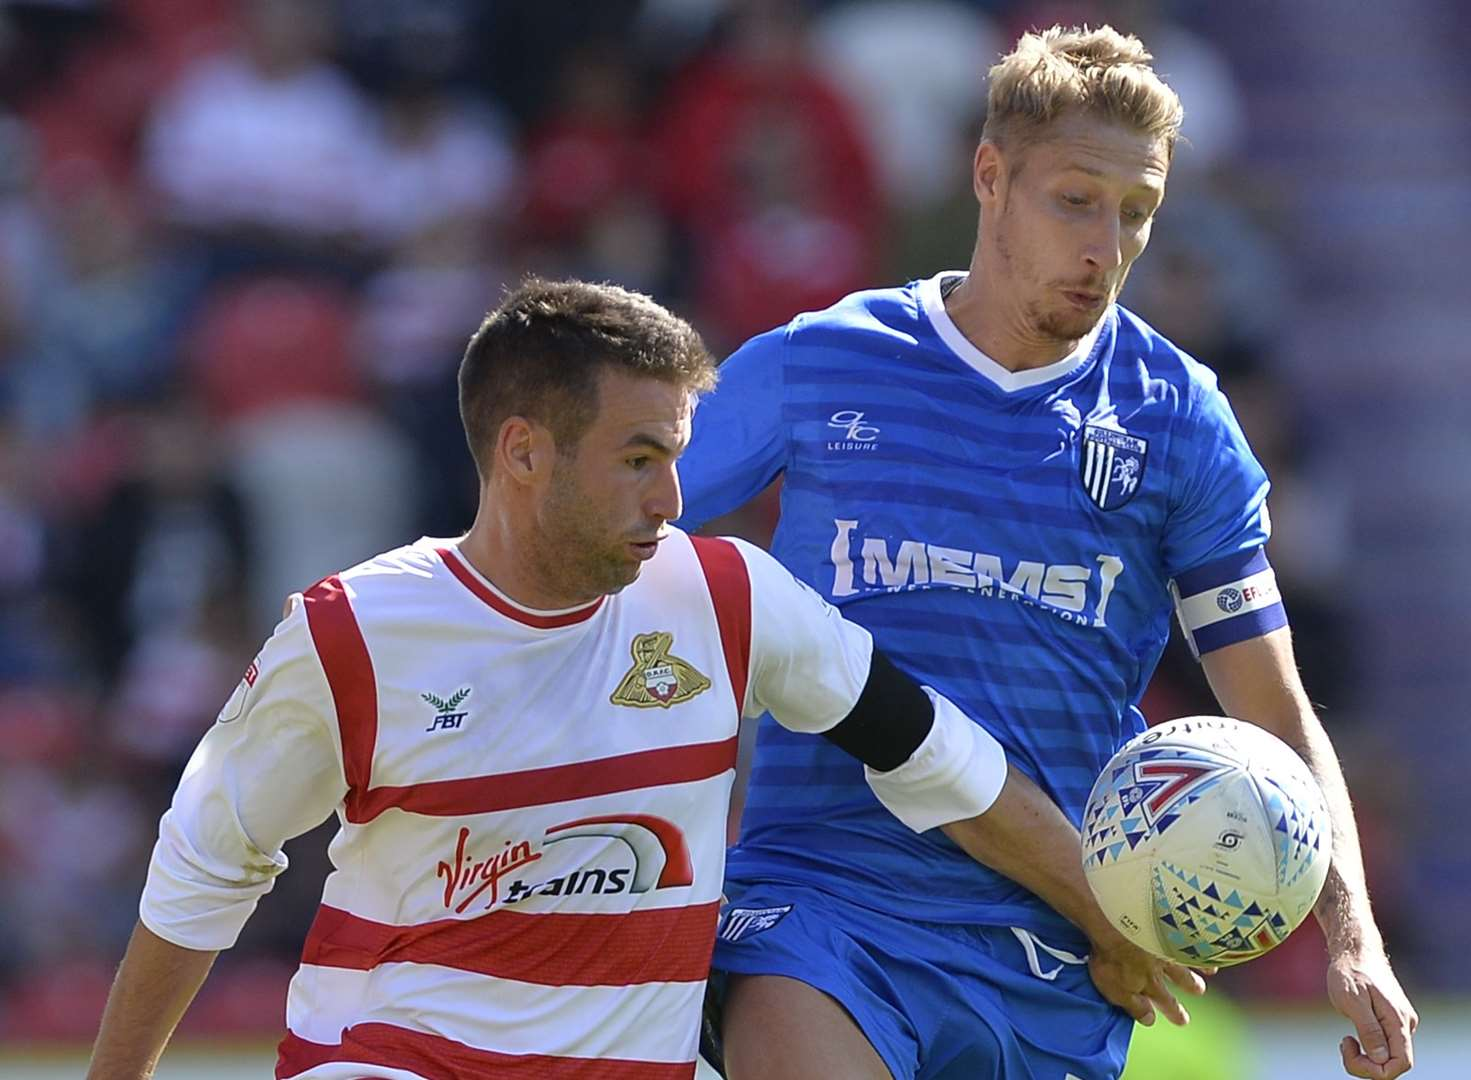 GALLERY: Top 10 Doncaster v Gills pictures